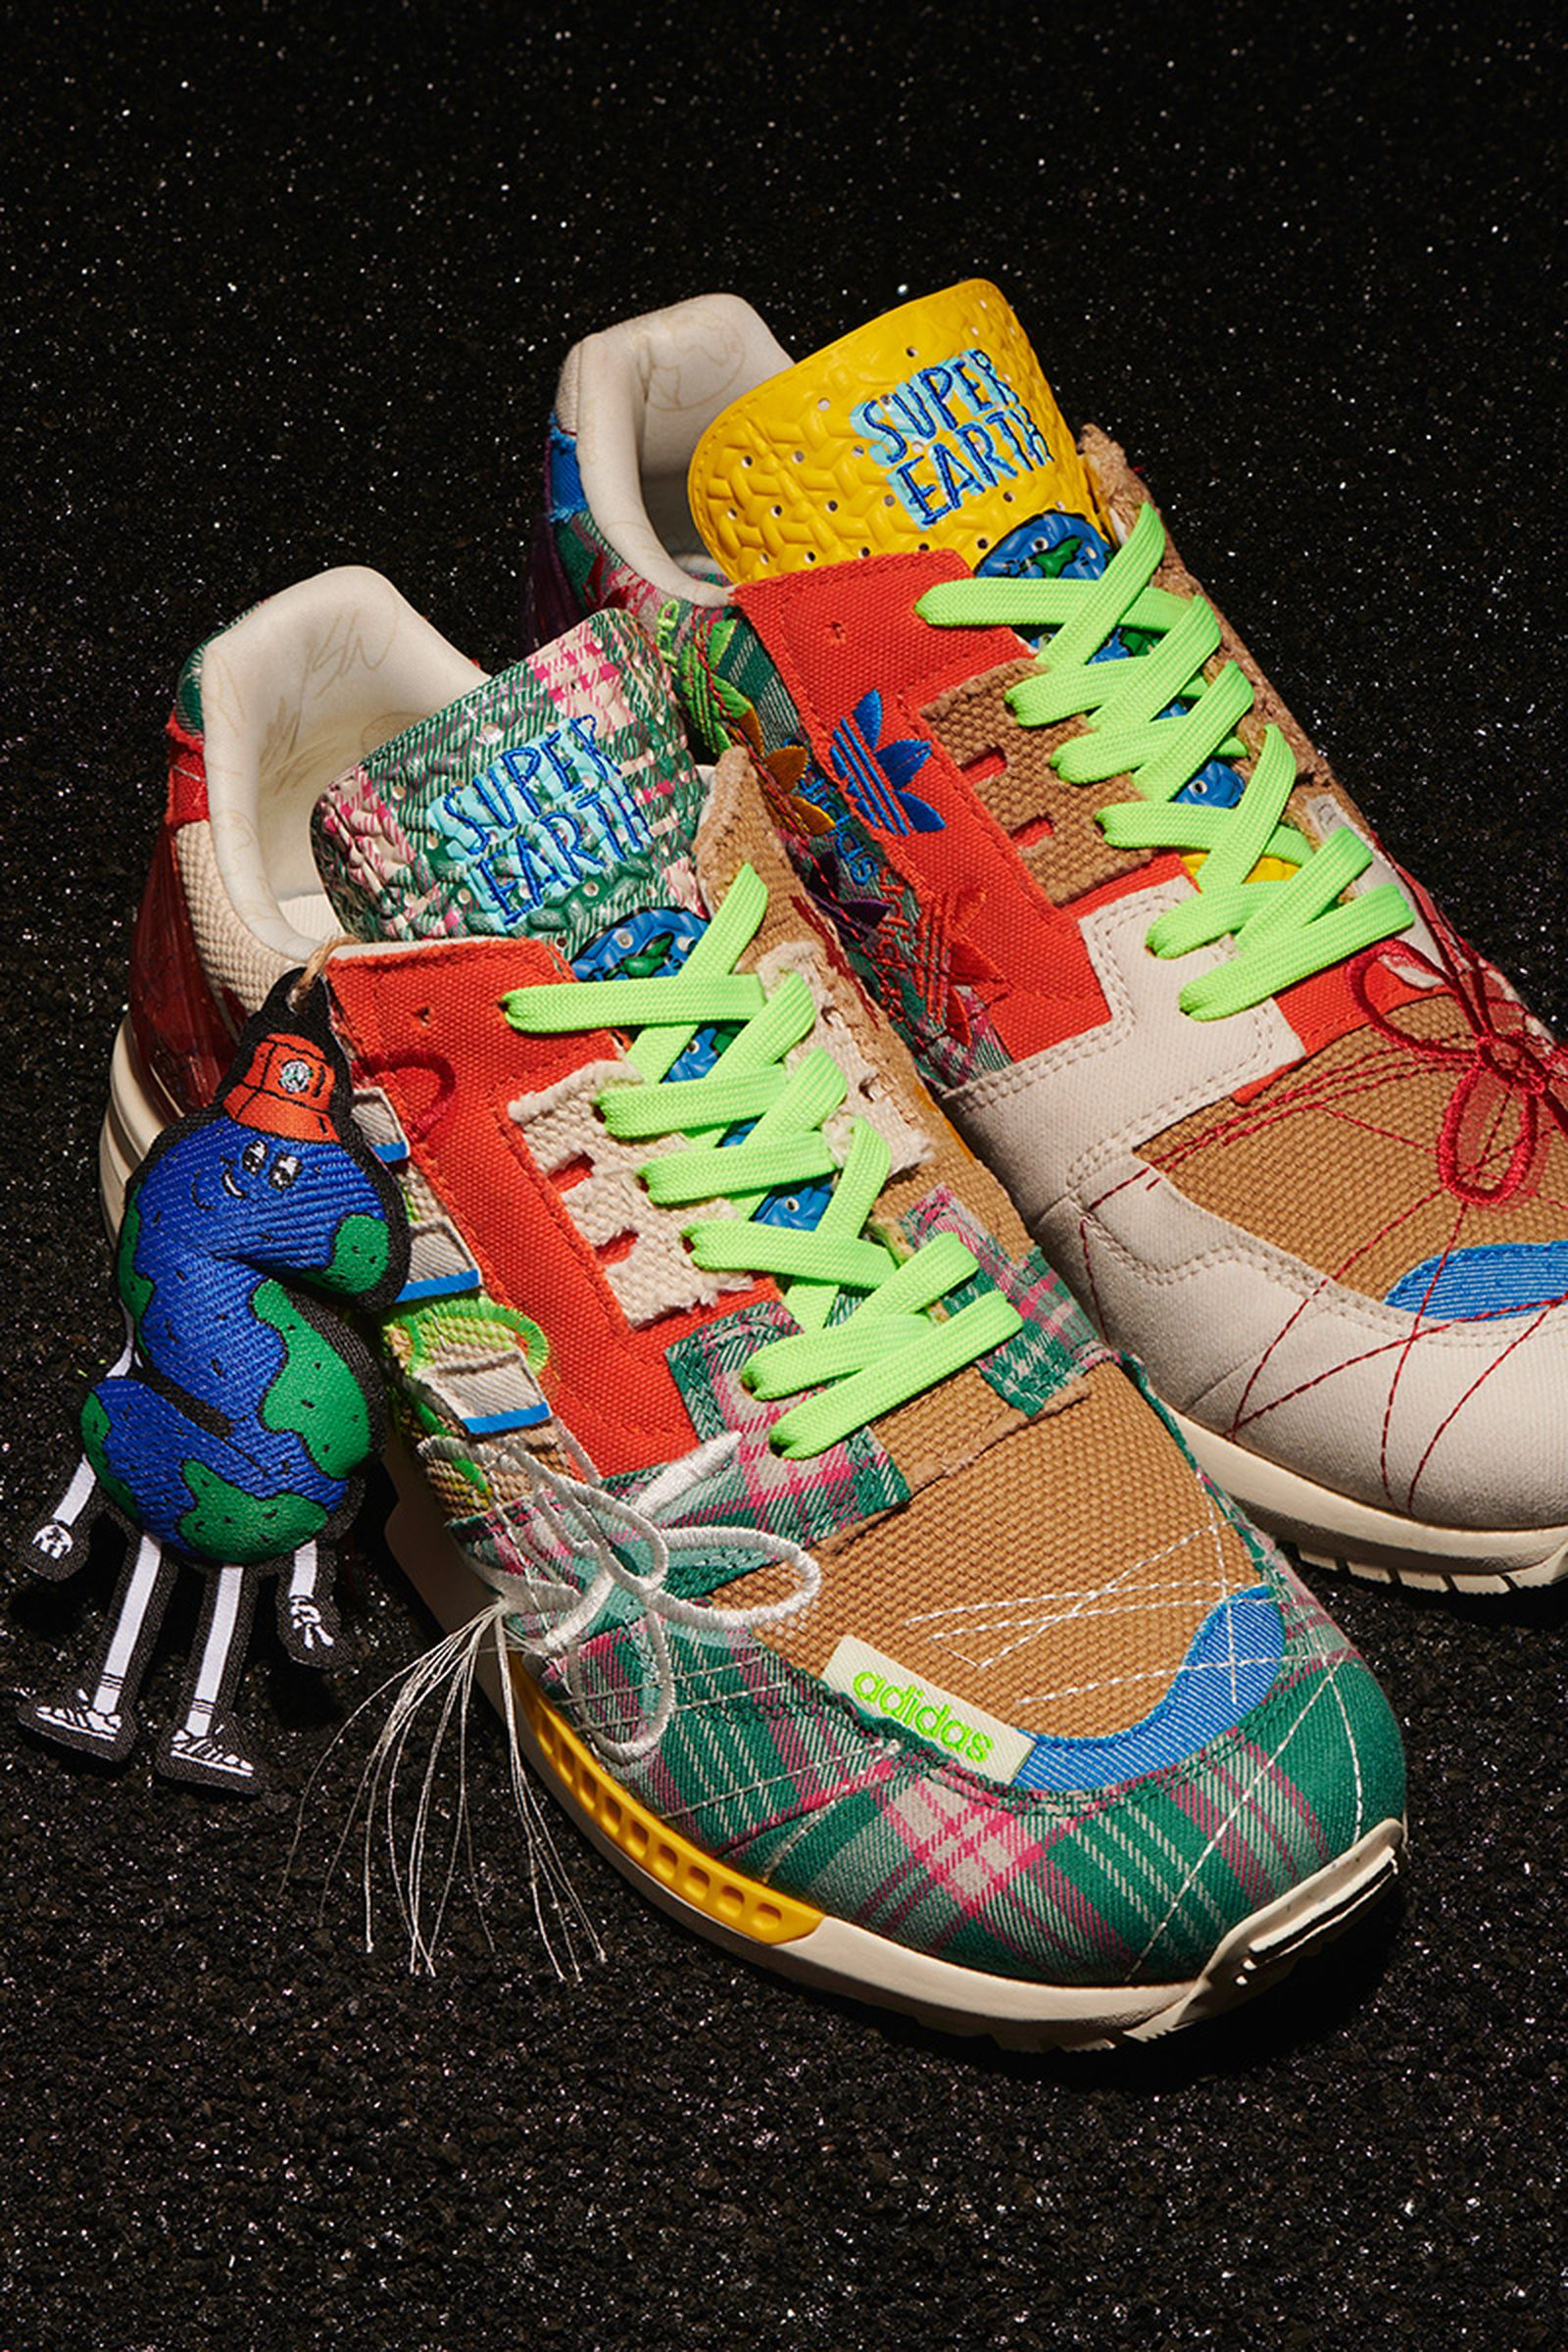 sean-wotherspoon-adidas-zx-8000-interview-08